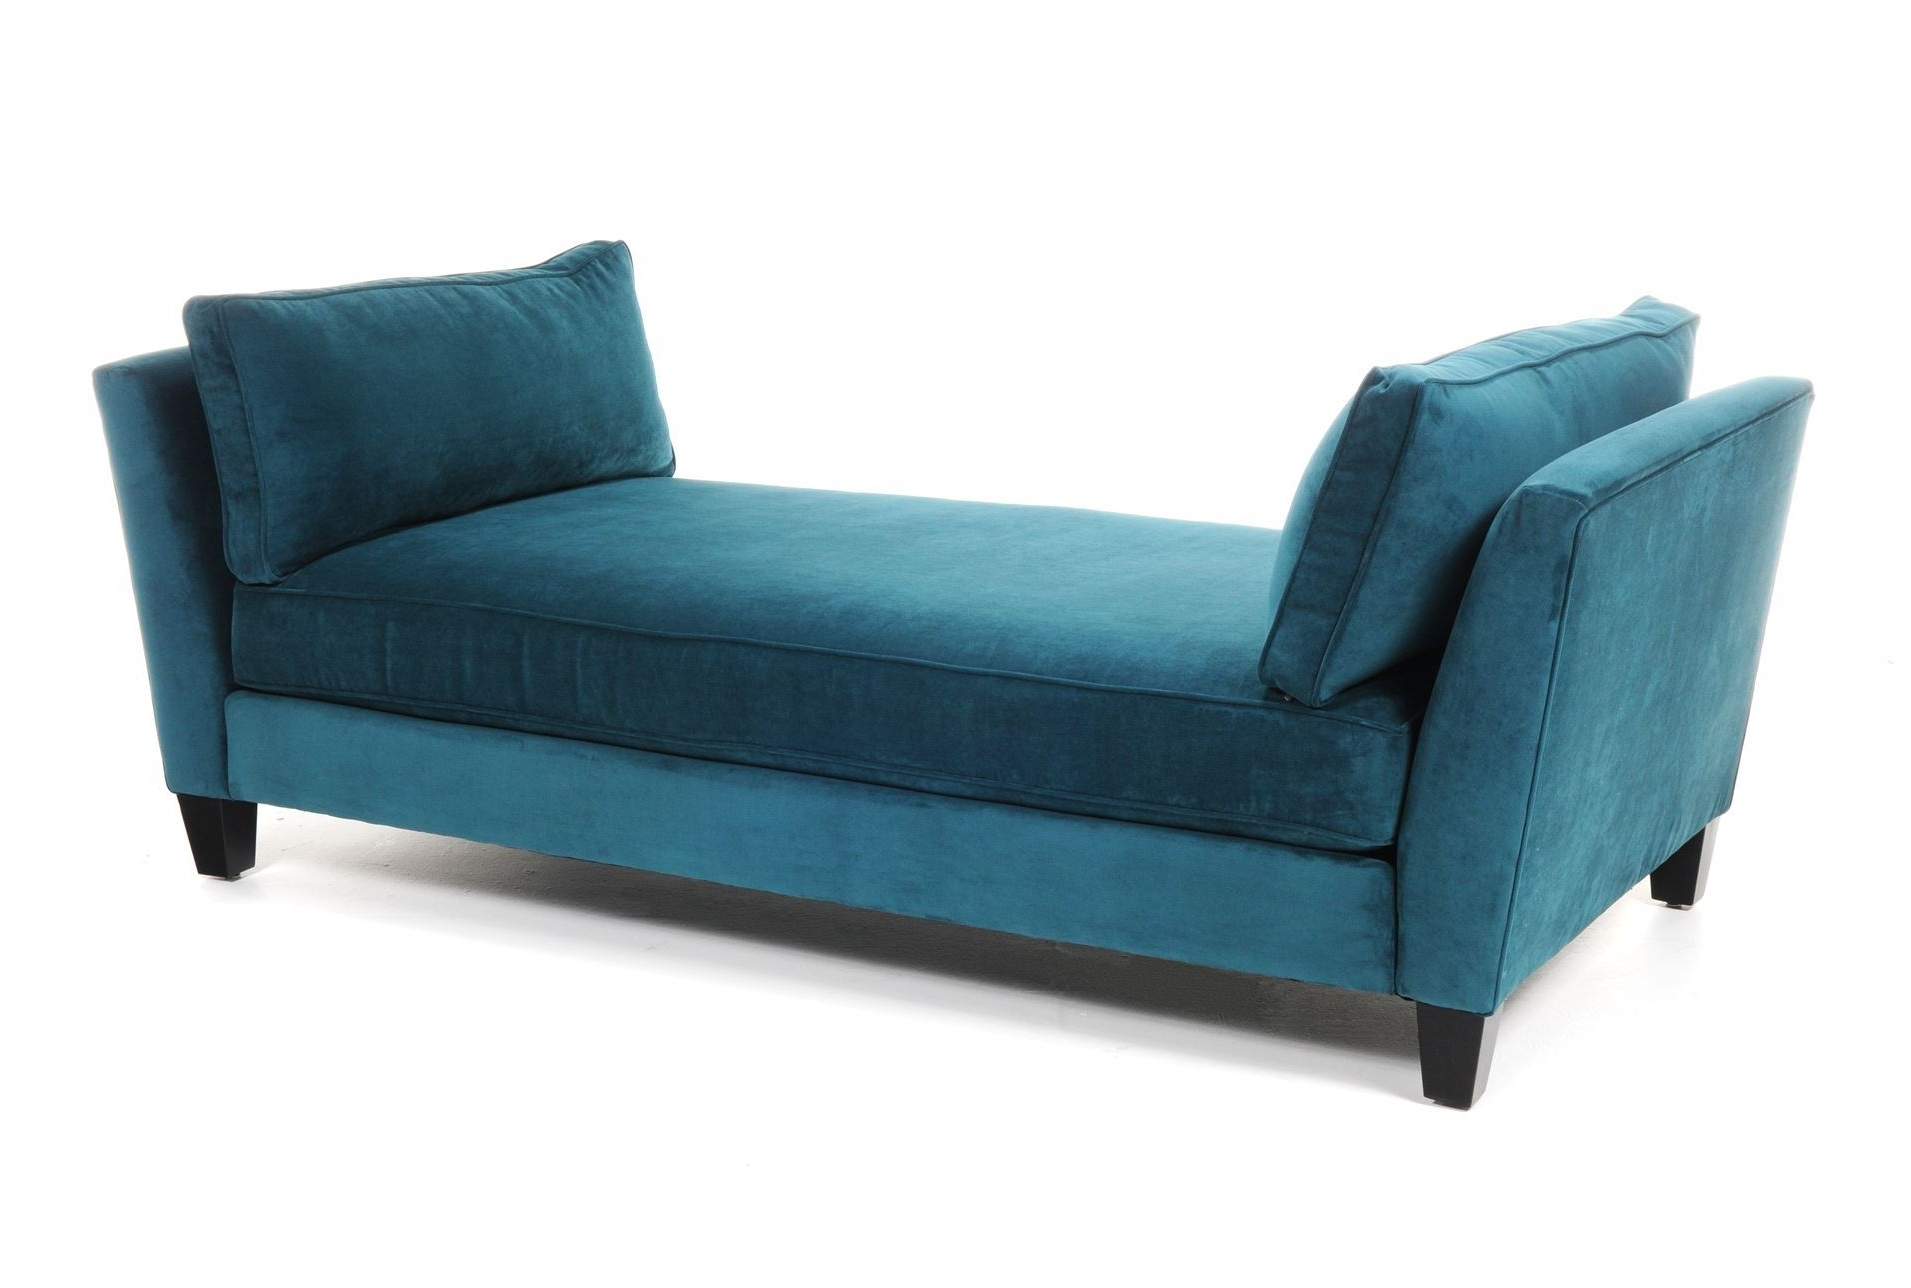 Teal Chaise Lounges With Well Known Seth Daybed Lounge (View 15 of 15)